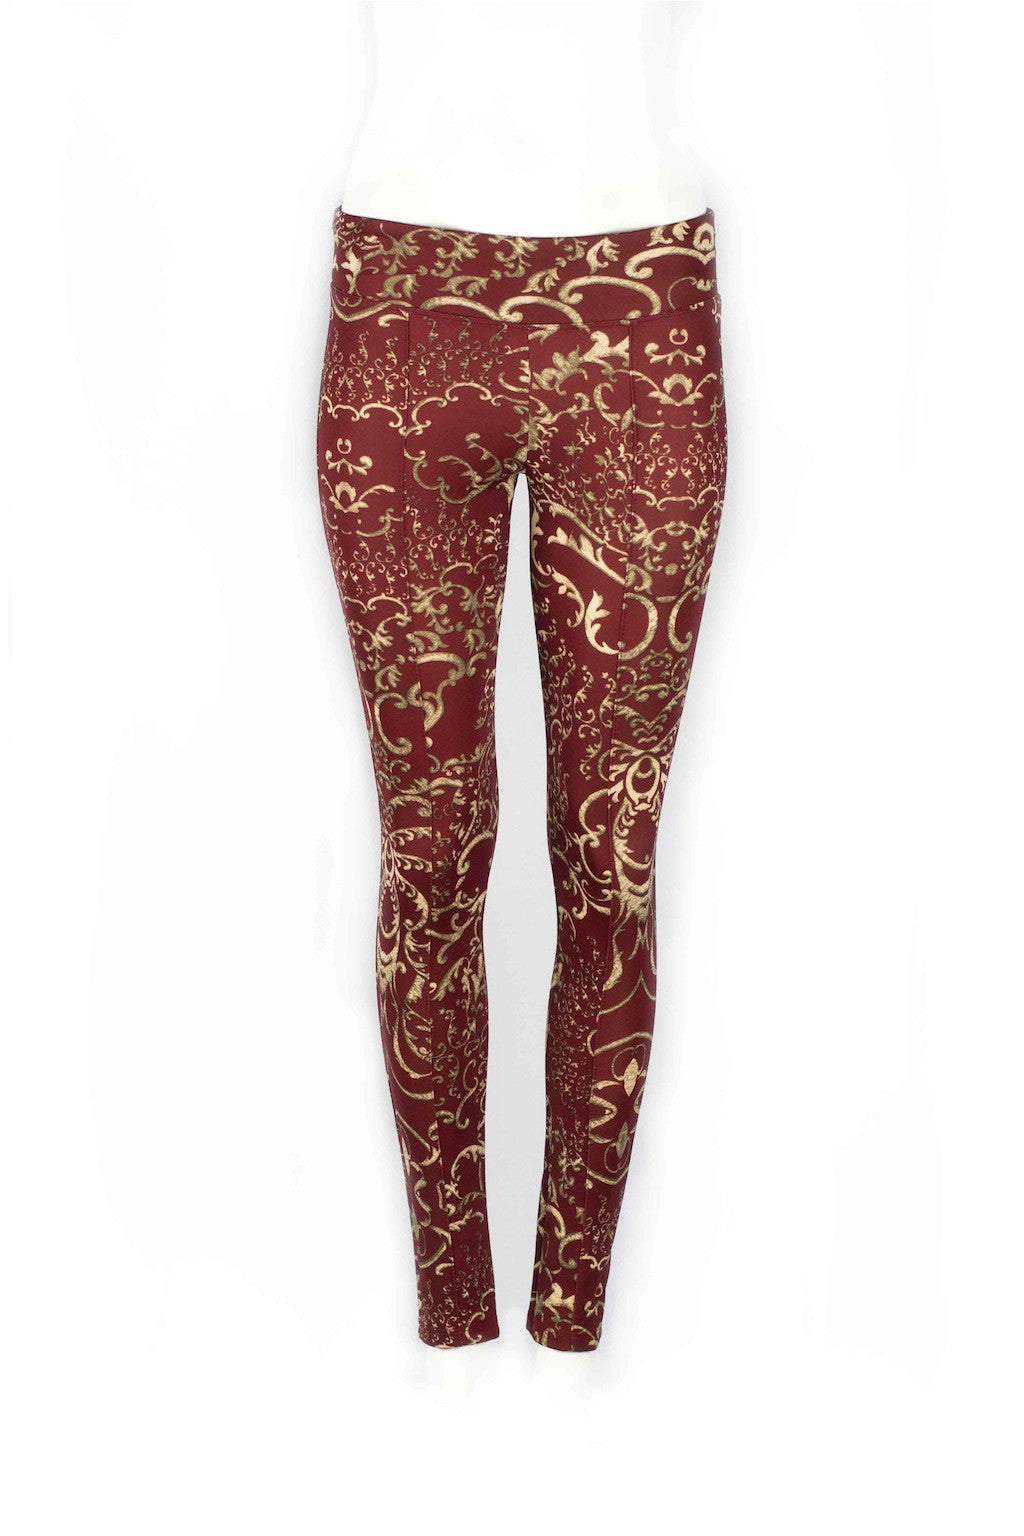 Mackenzie Golden Arabesque Fitted Scuba Pants - ANA MARIA KIM  - 5